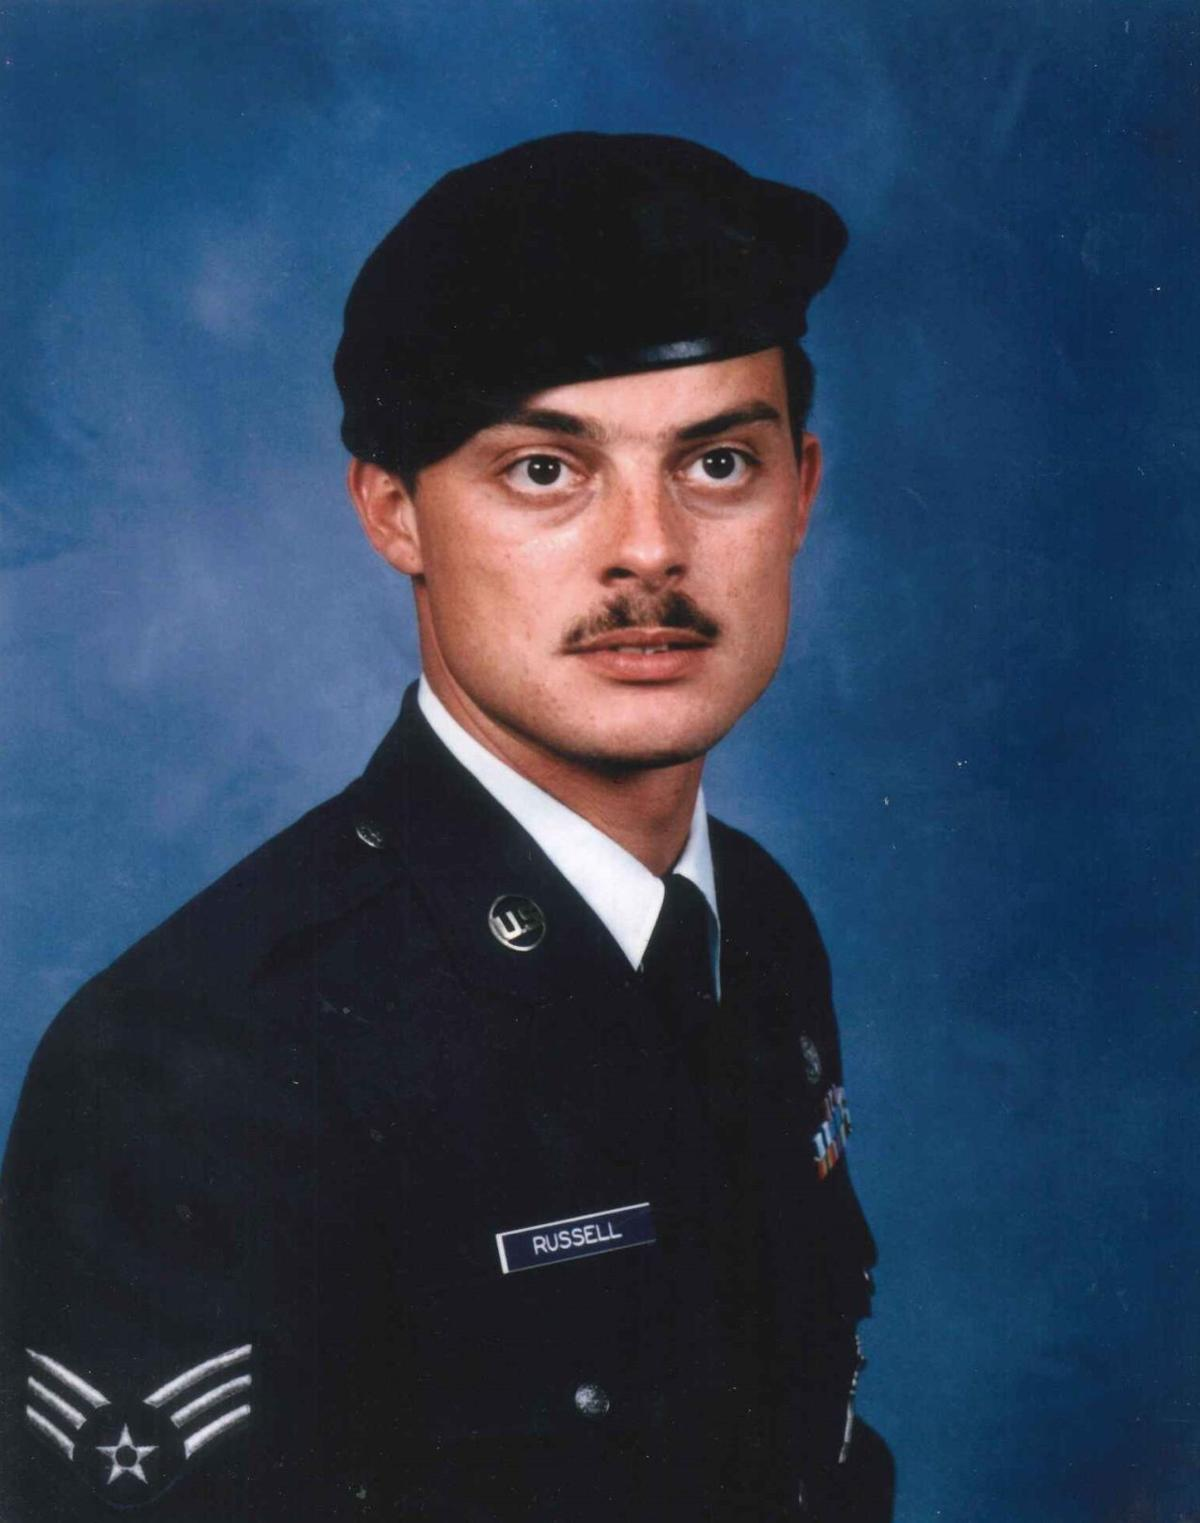 ssgt christopher chris allen russell obituaries christopher russell